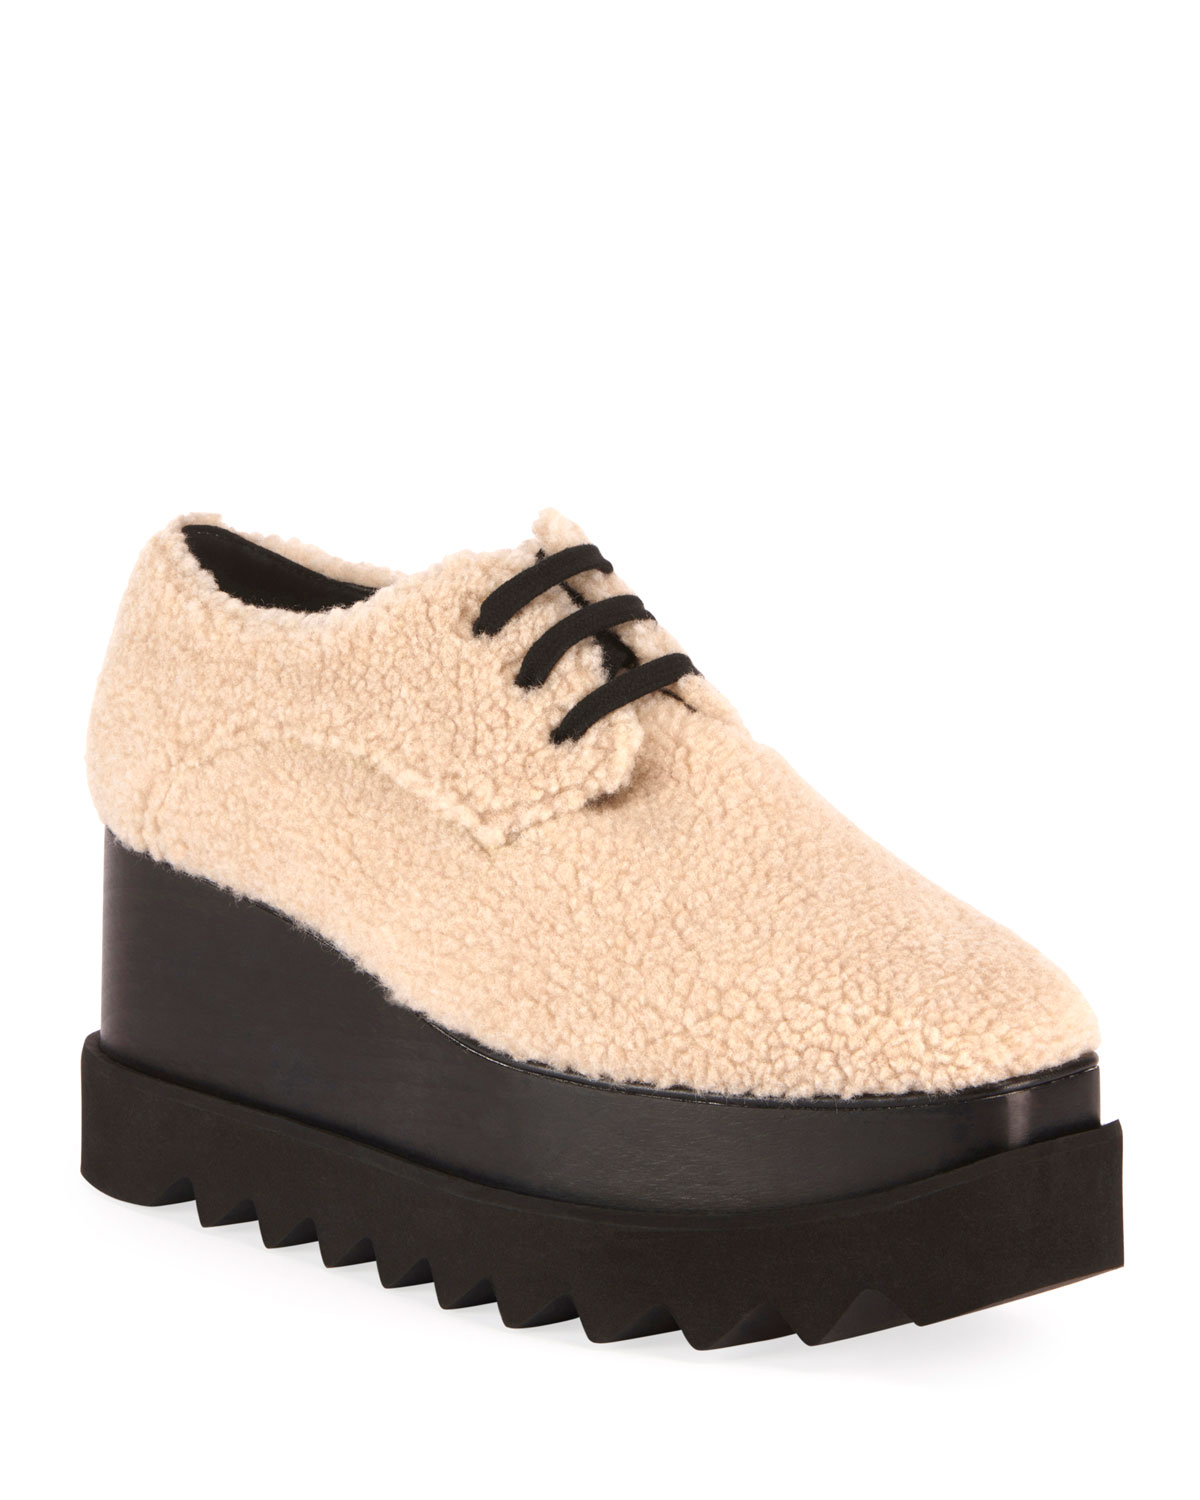 Elyse Lace-Up Faux-Shearling Sneakers